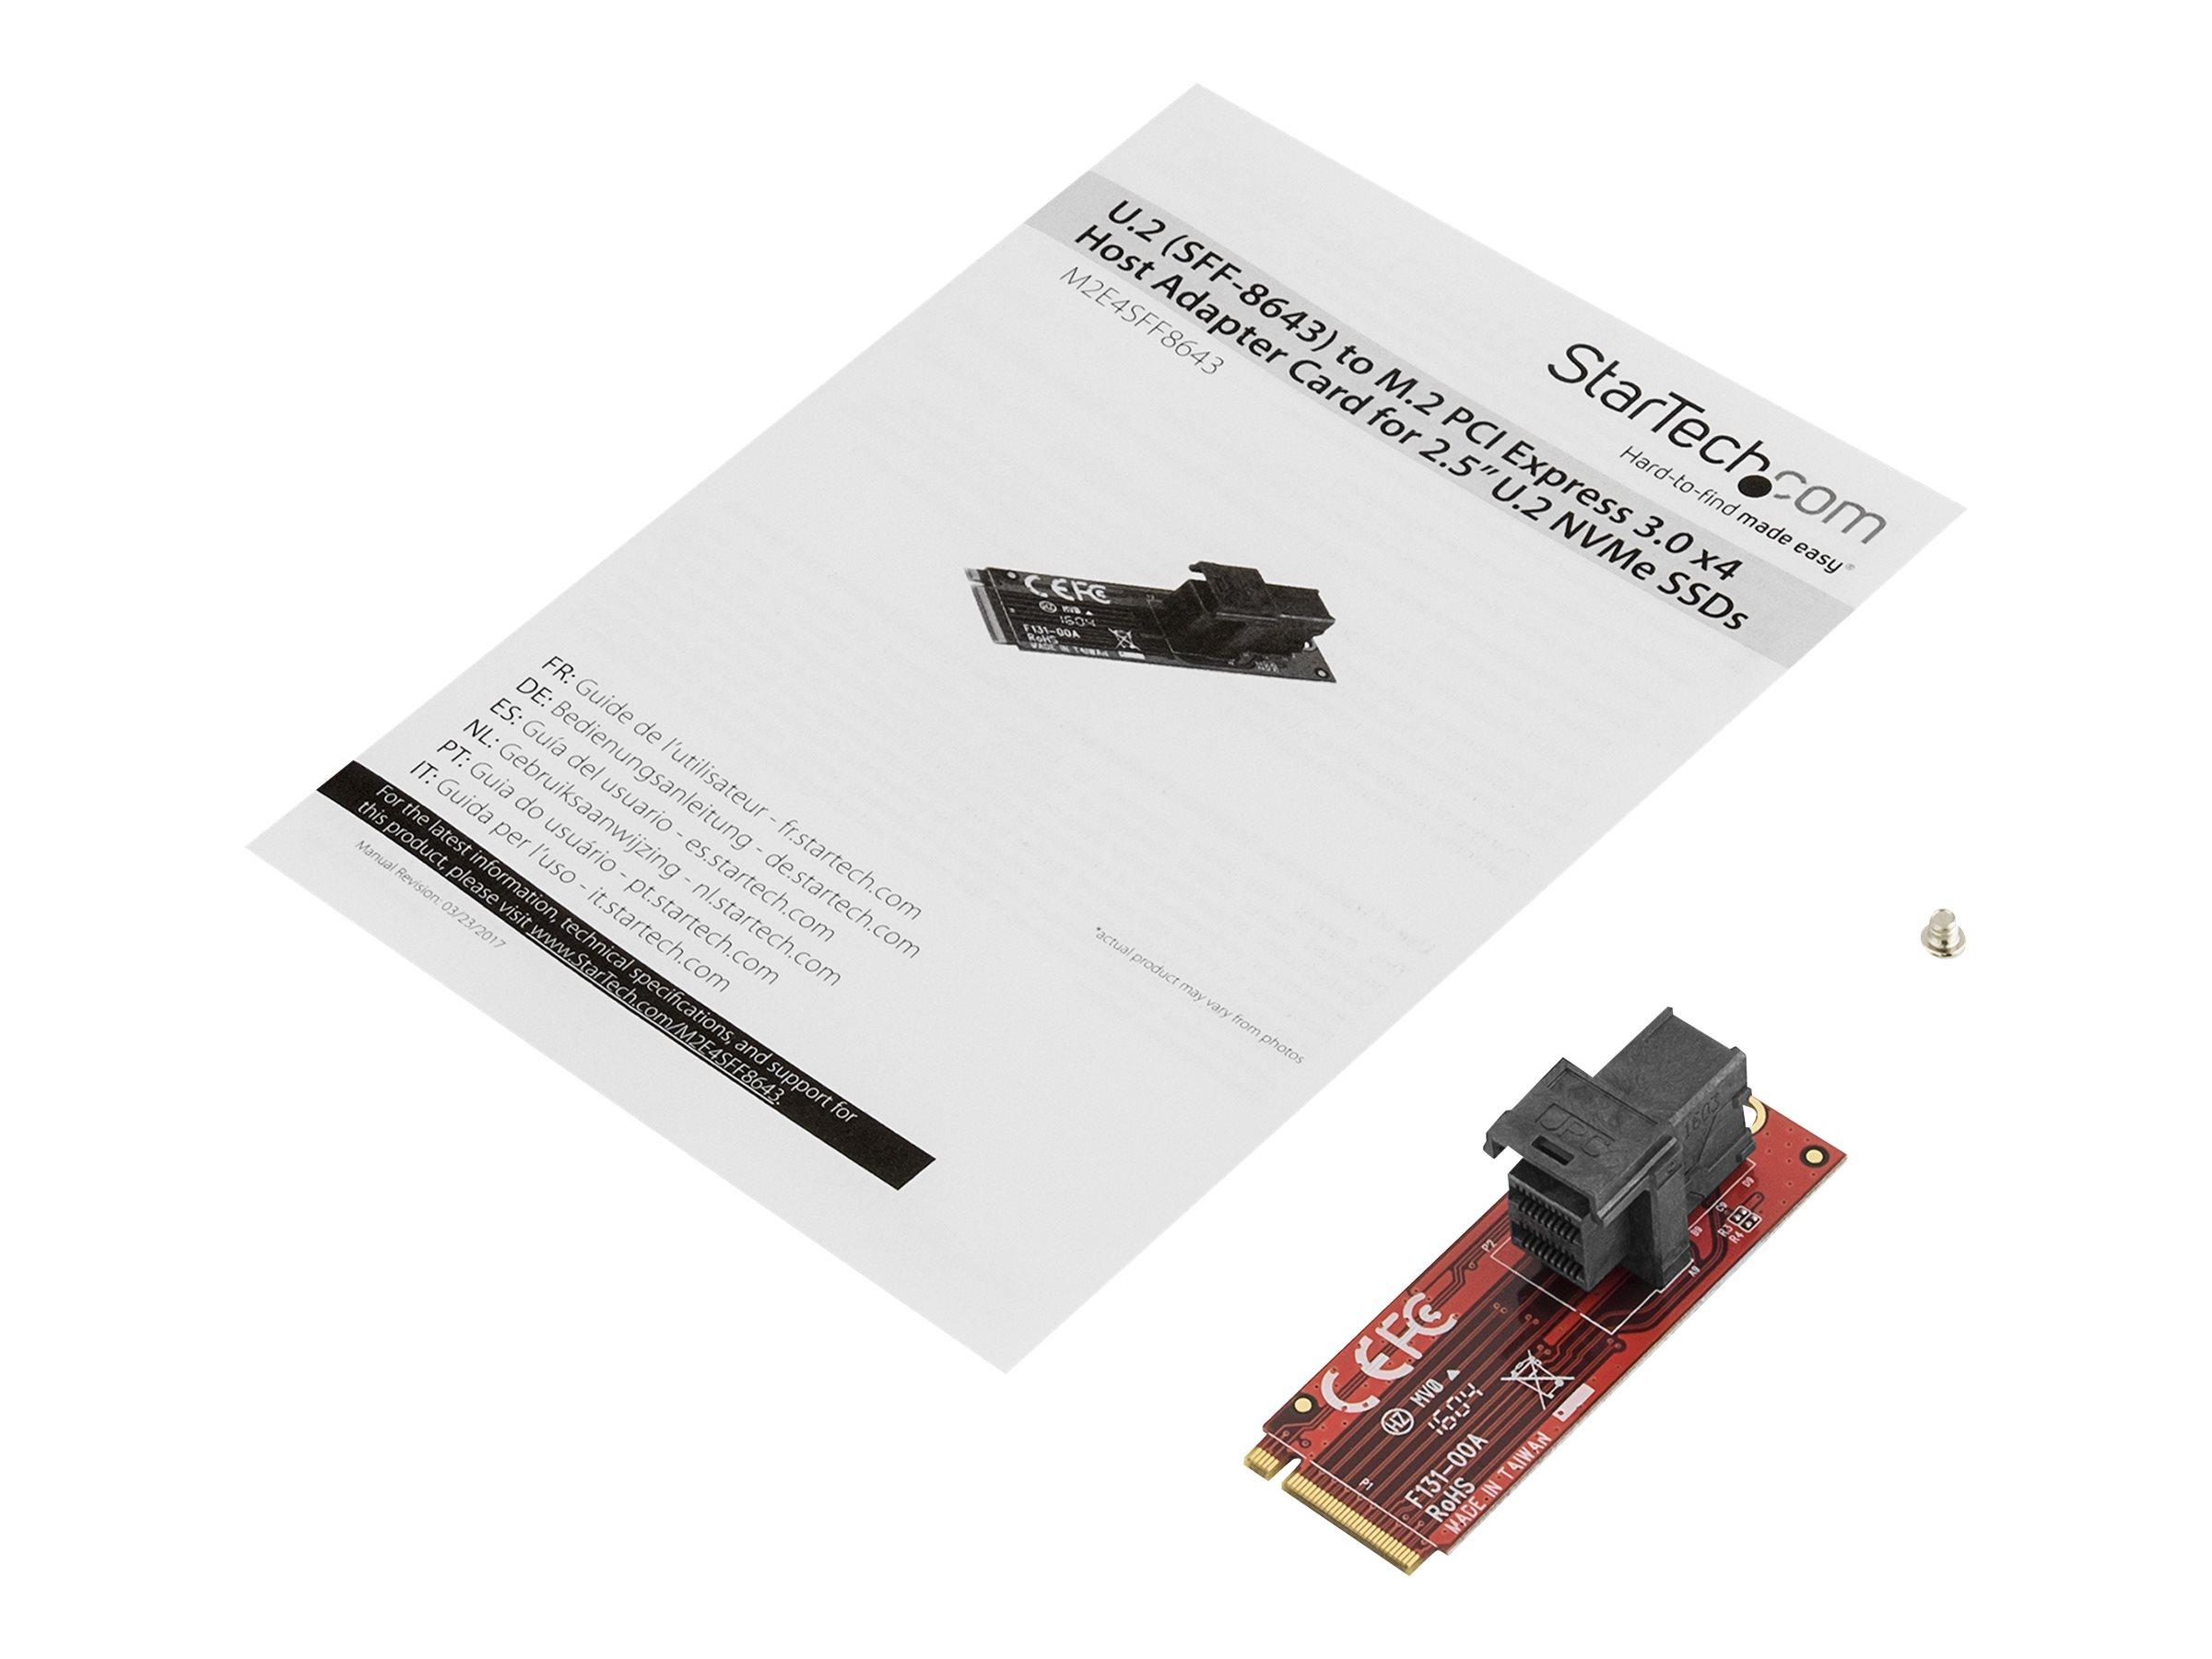 StarTech.com U.2 to M.2 Adapter - for 1 x U.2 PCIe NVMe SSD - M.2 PCIe x4 Host Interface - U.2 SSD - M.2 PCIe Adapter - U.2 Drive (M2E4SFF8643) - interface adapter - SAS - M.2 Card